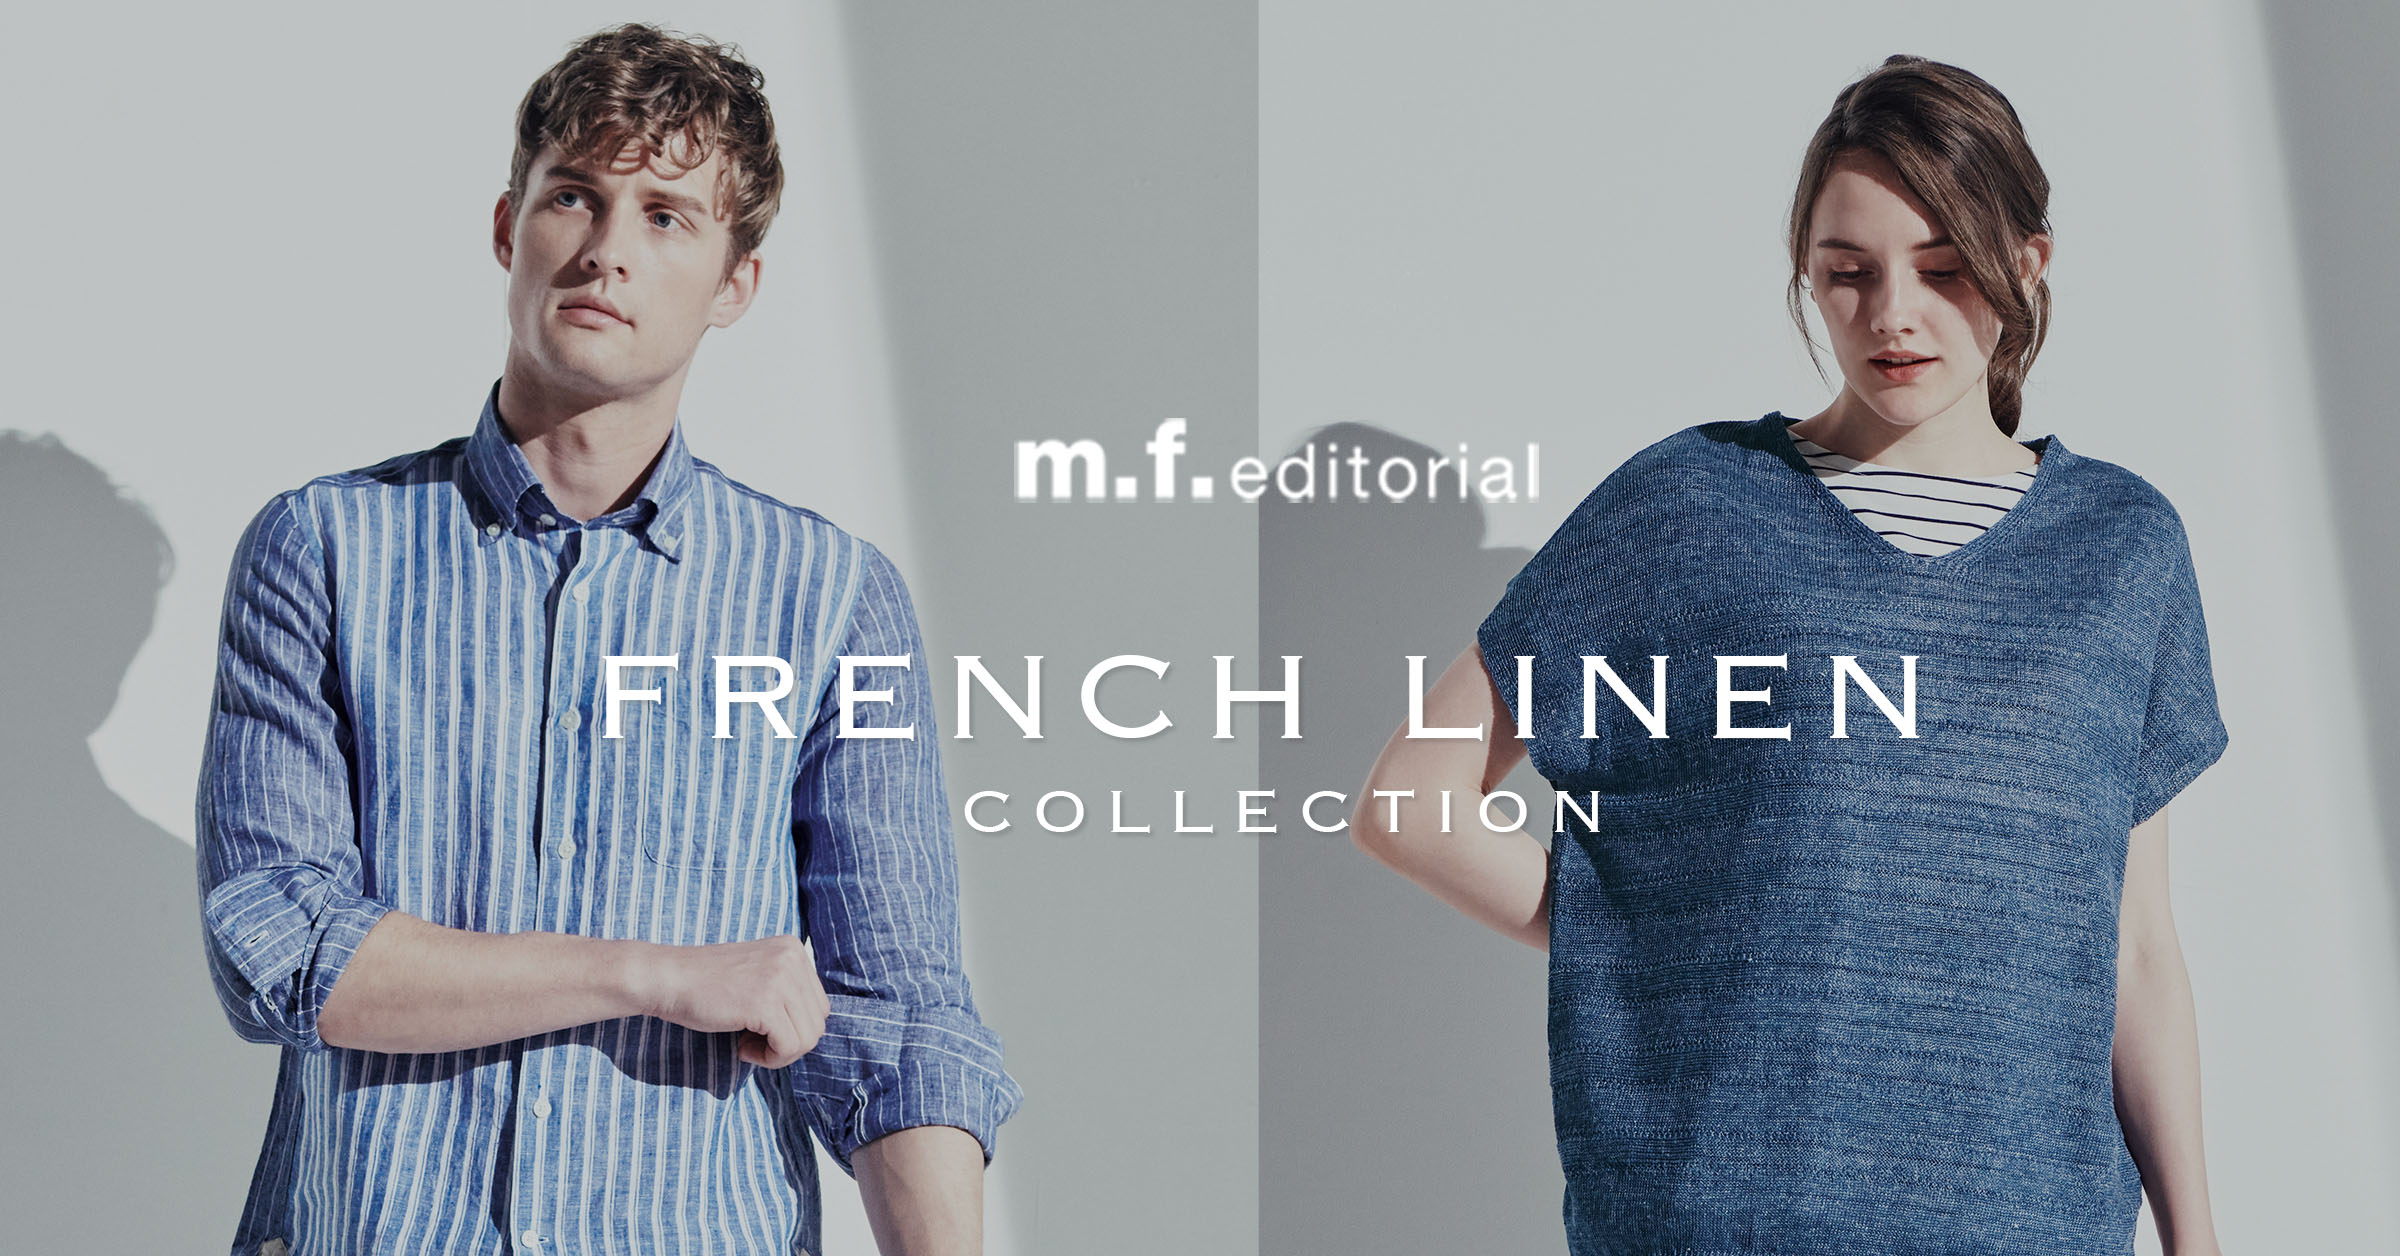 m.f.editorial FRENCH LINEN COLLECTION